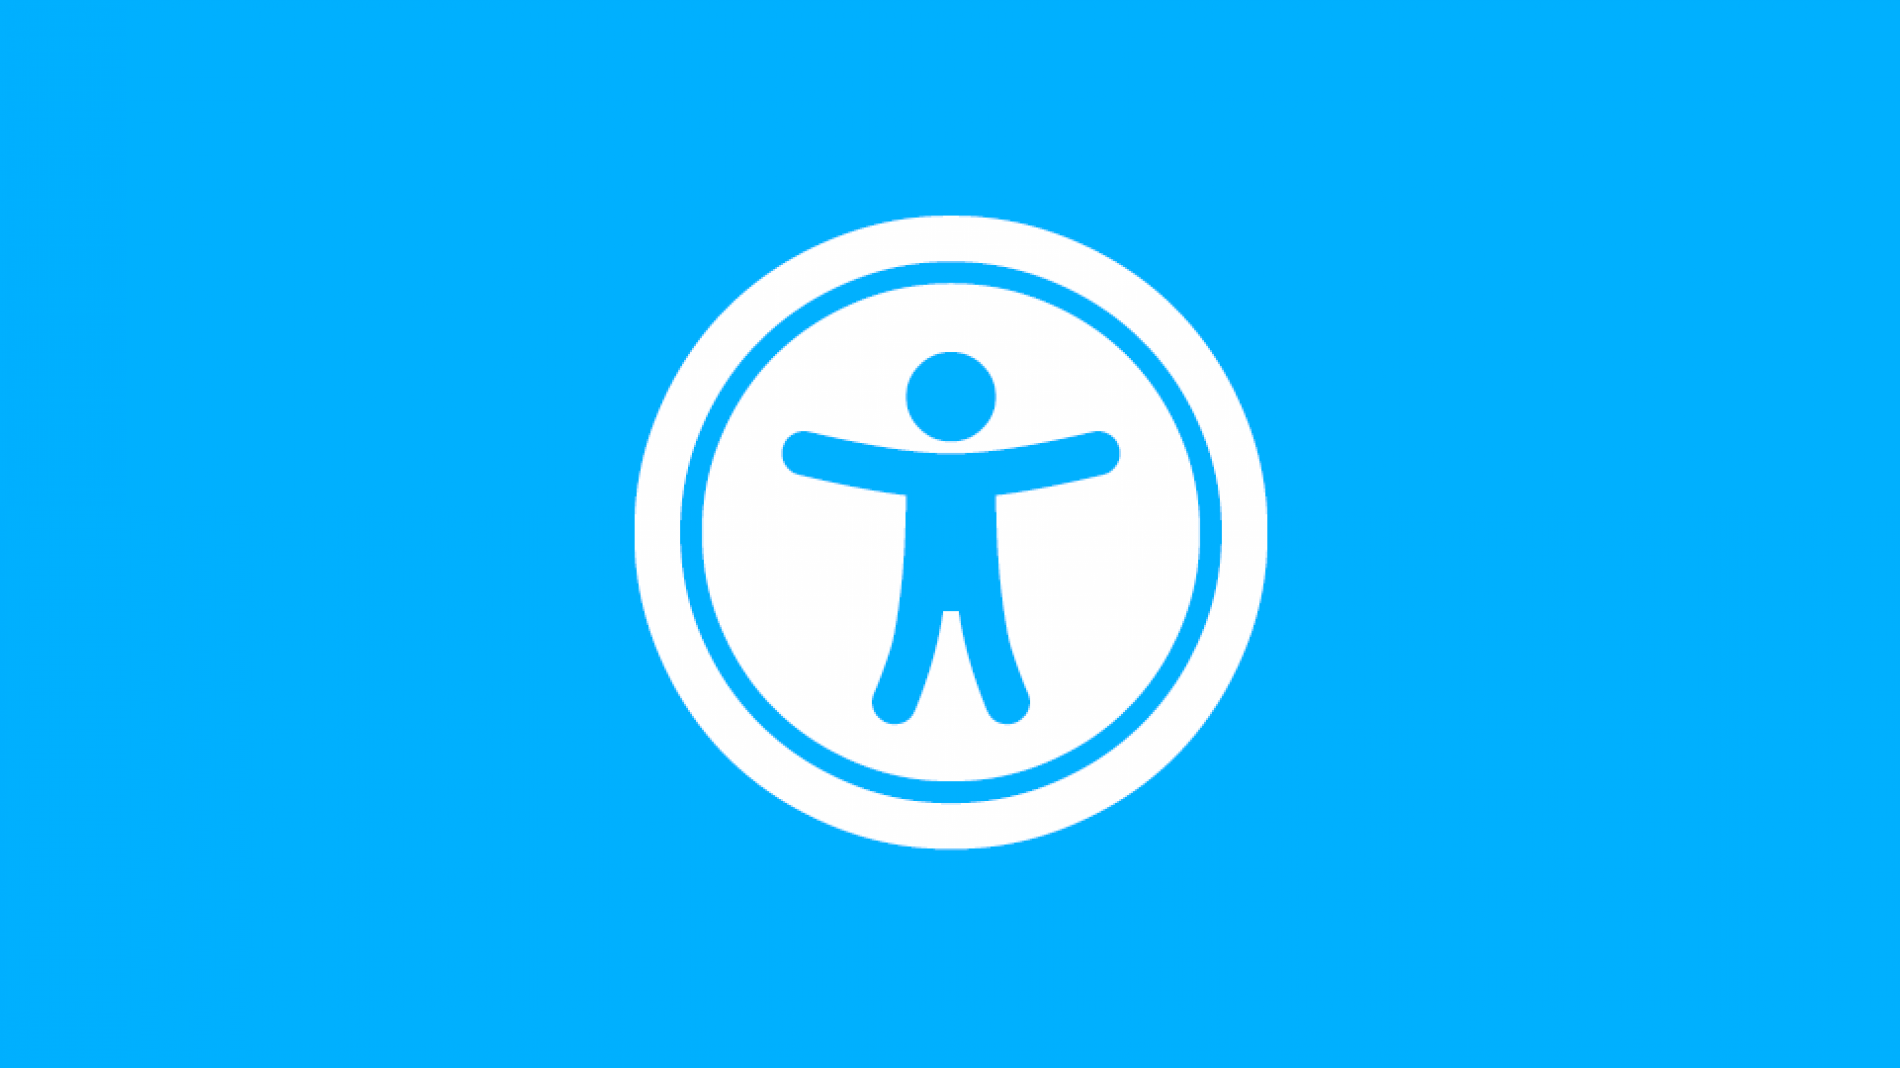 The accessibility icon